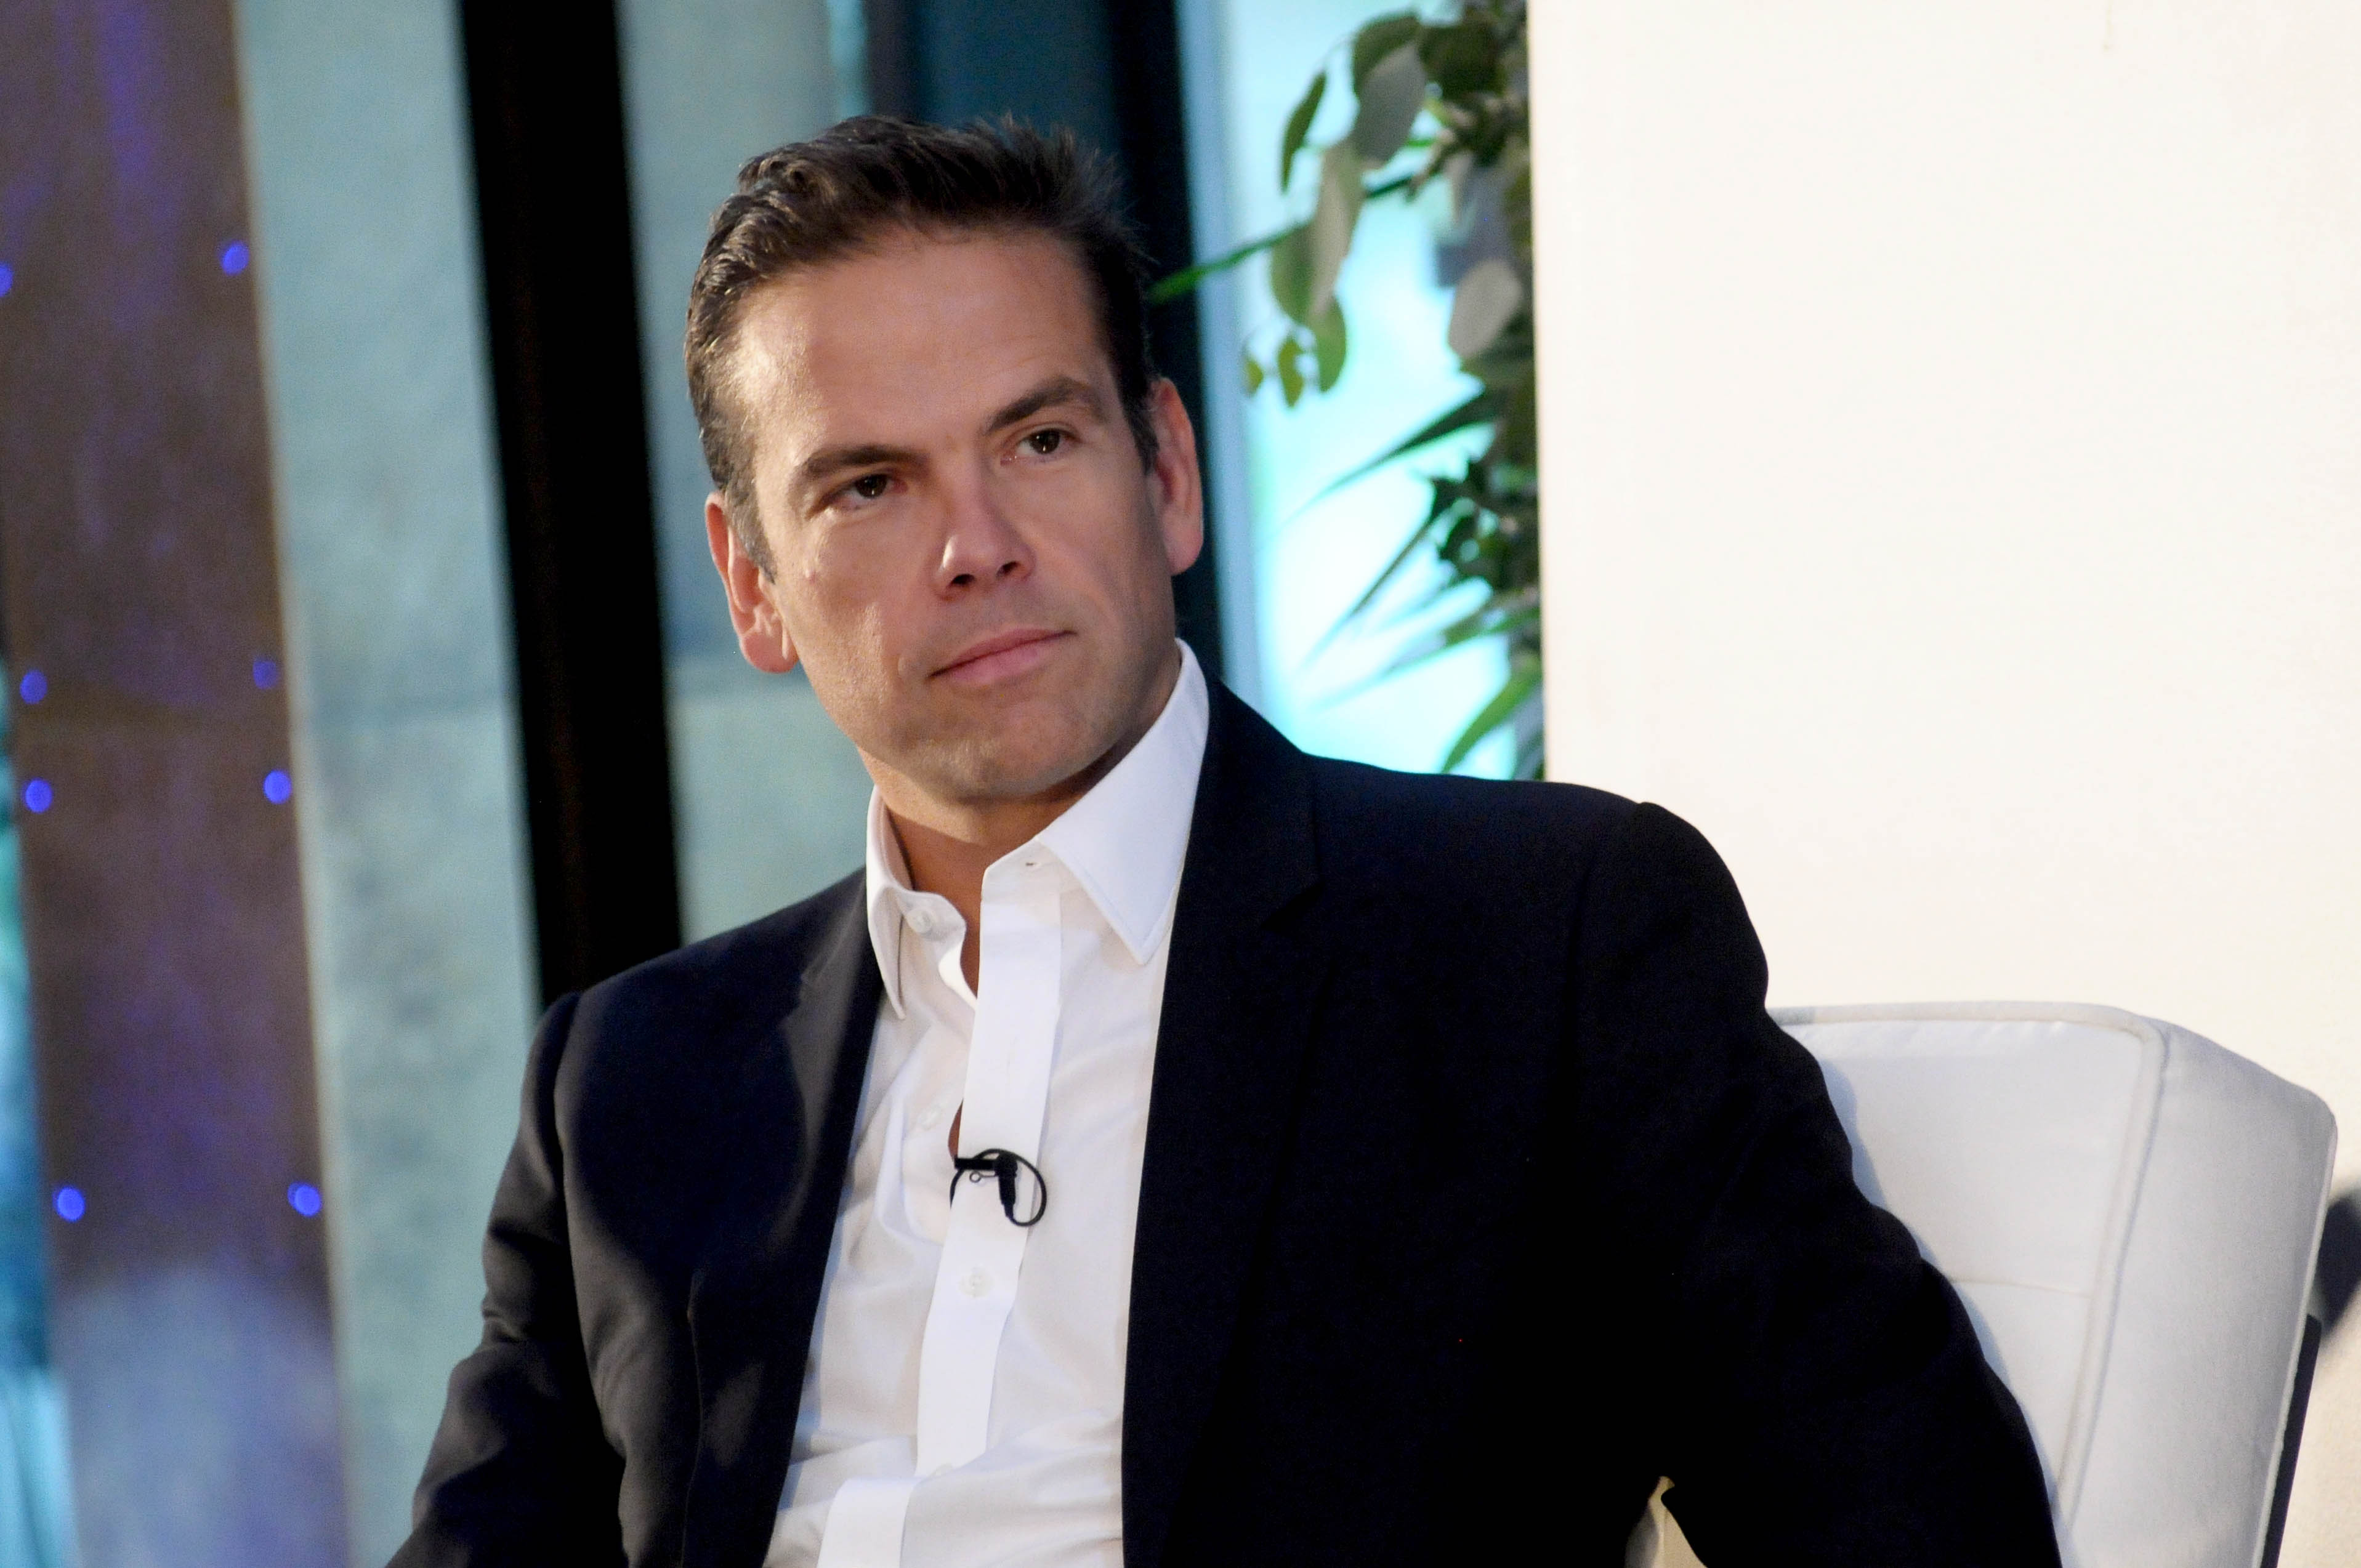 Lachlan Murdoch Charts Future For Fox With All Employees As Shareholders – Deadline